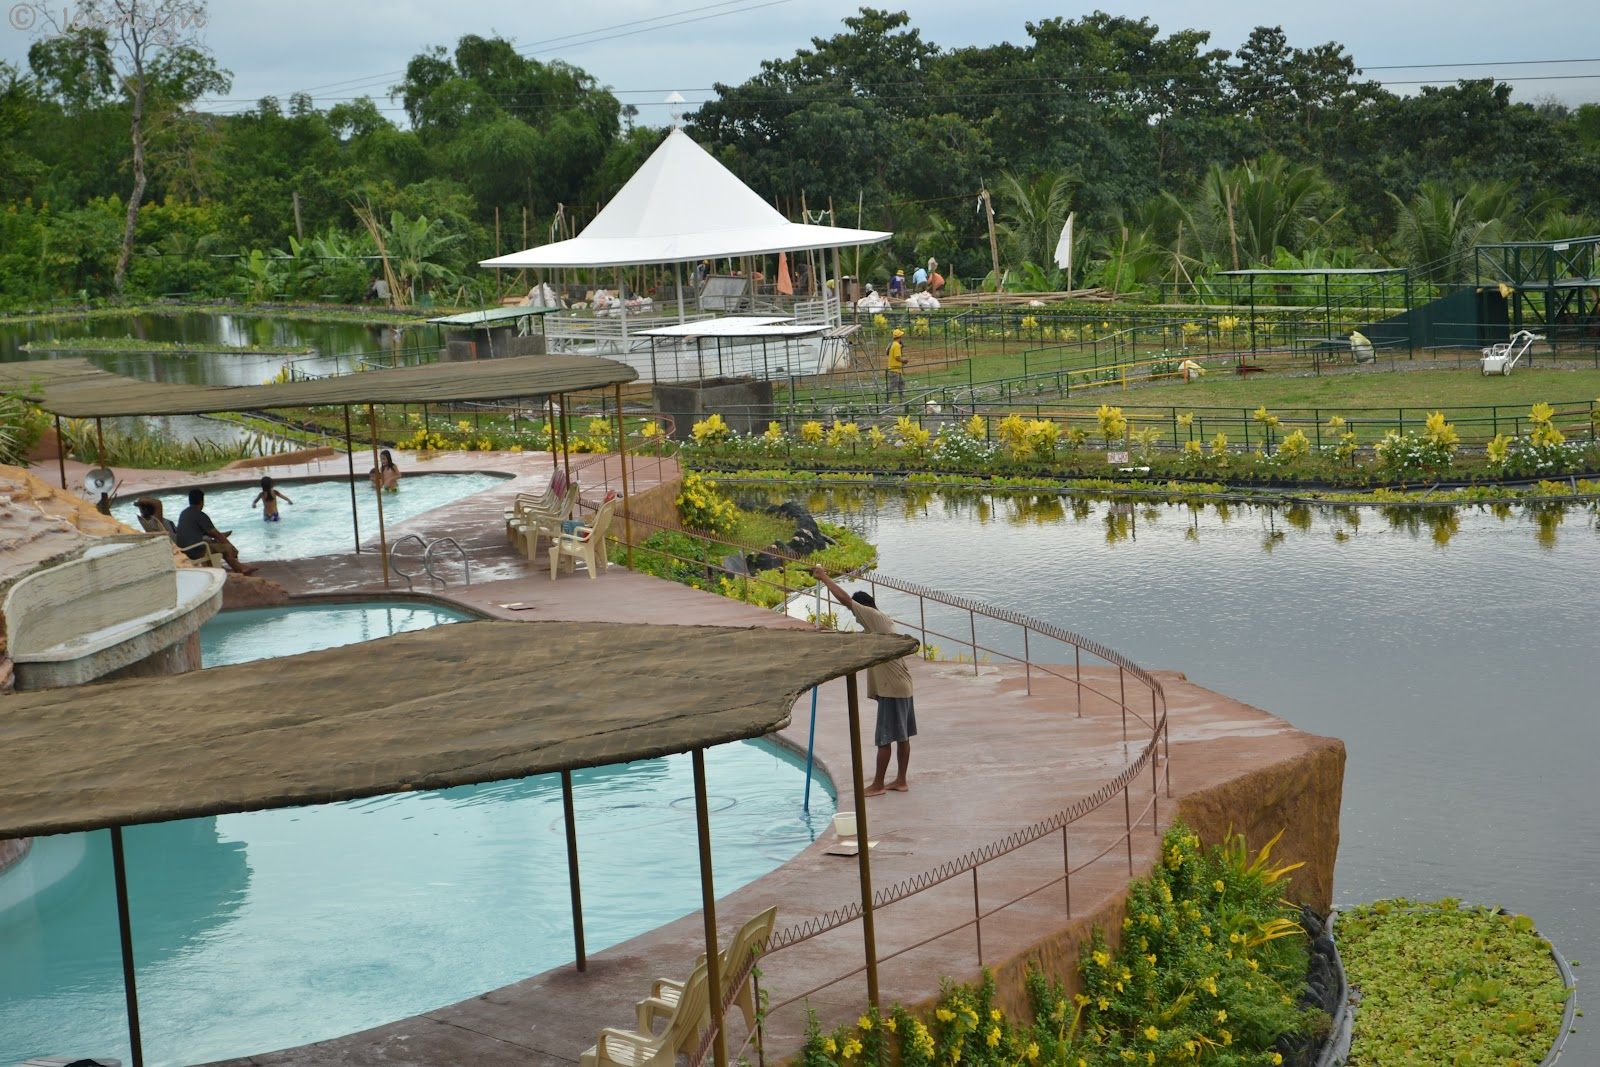 Destination Philippines: The Recreational Park: Garin Farm, San